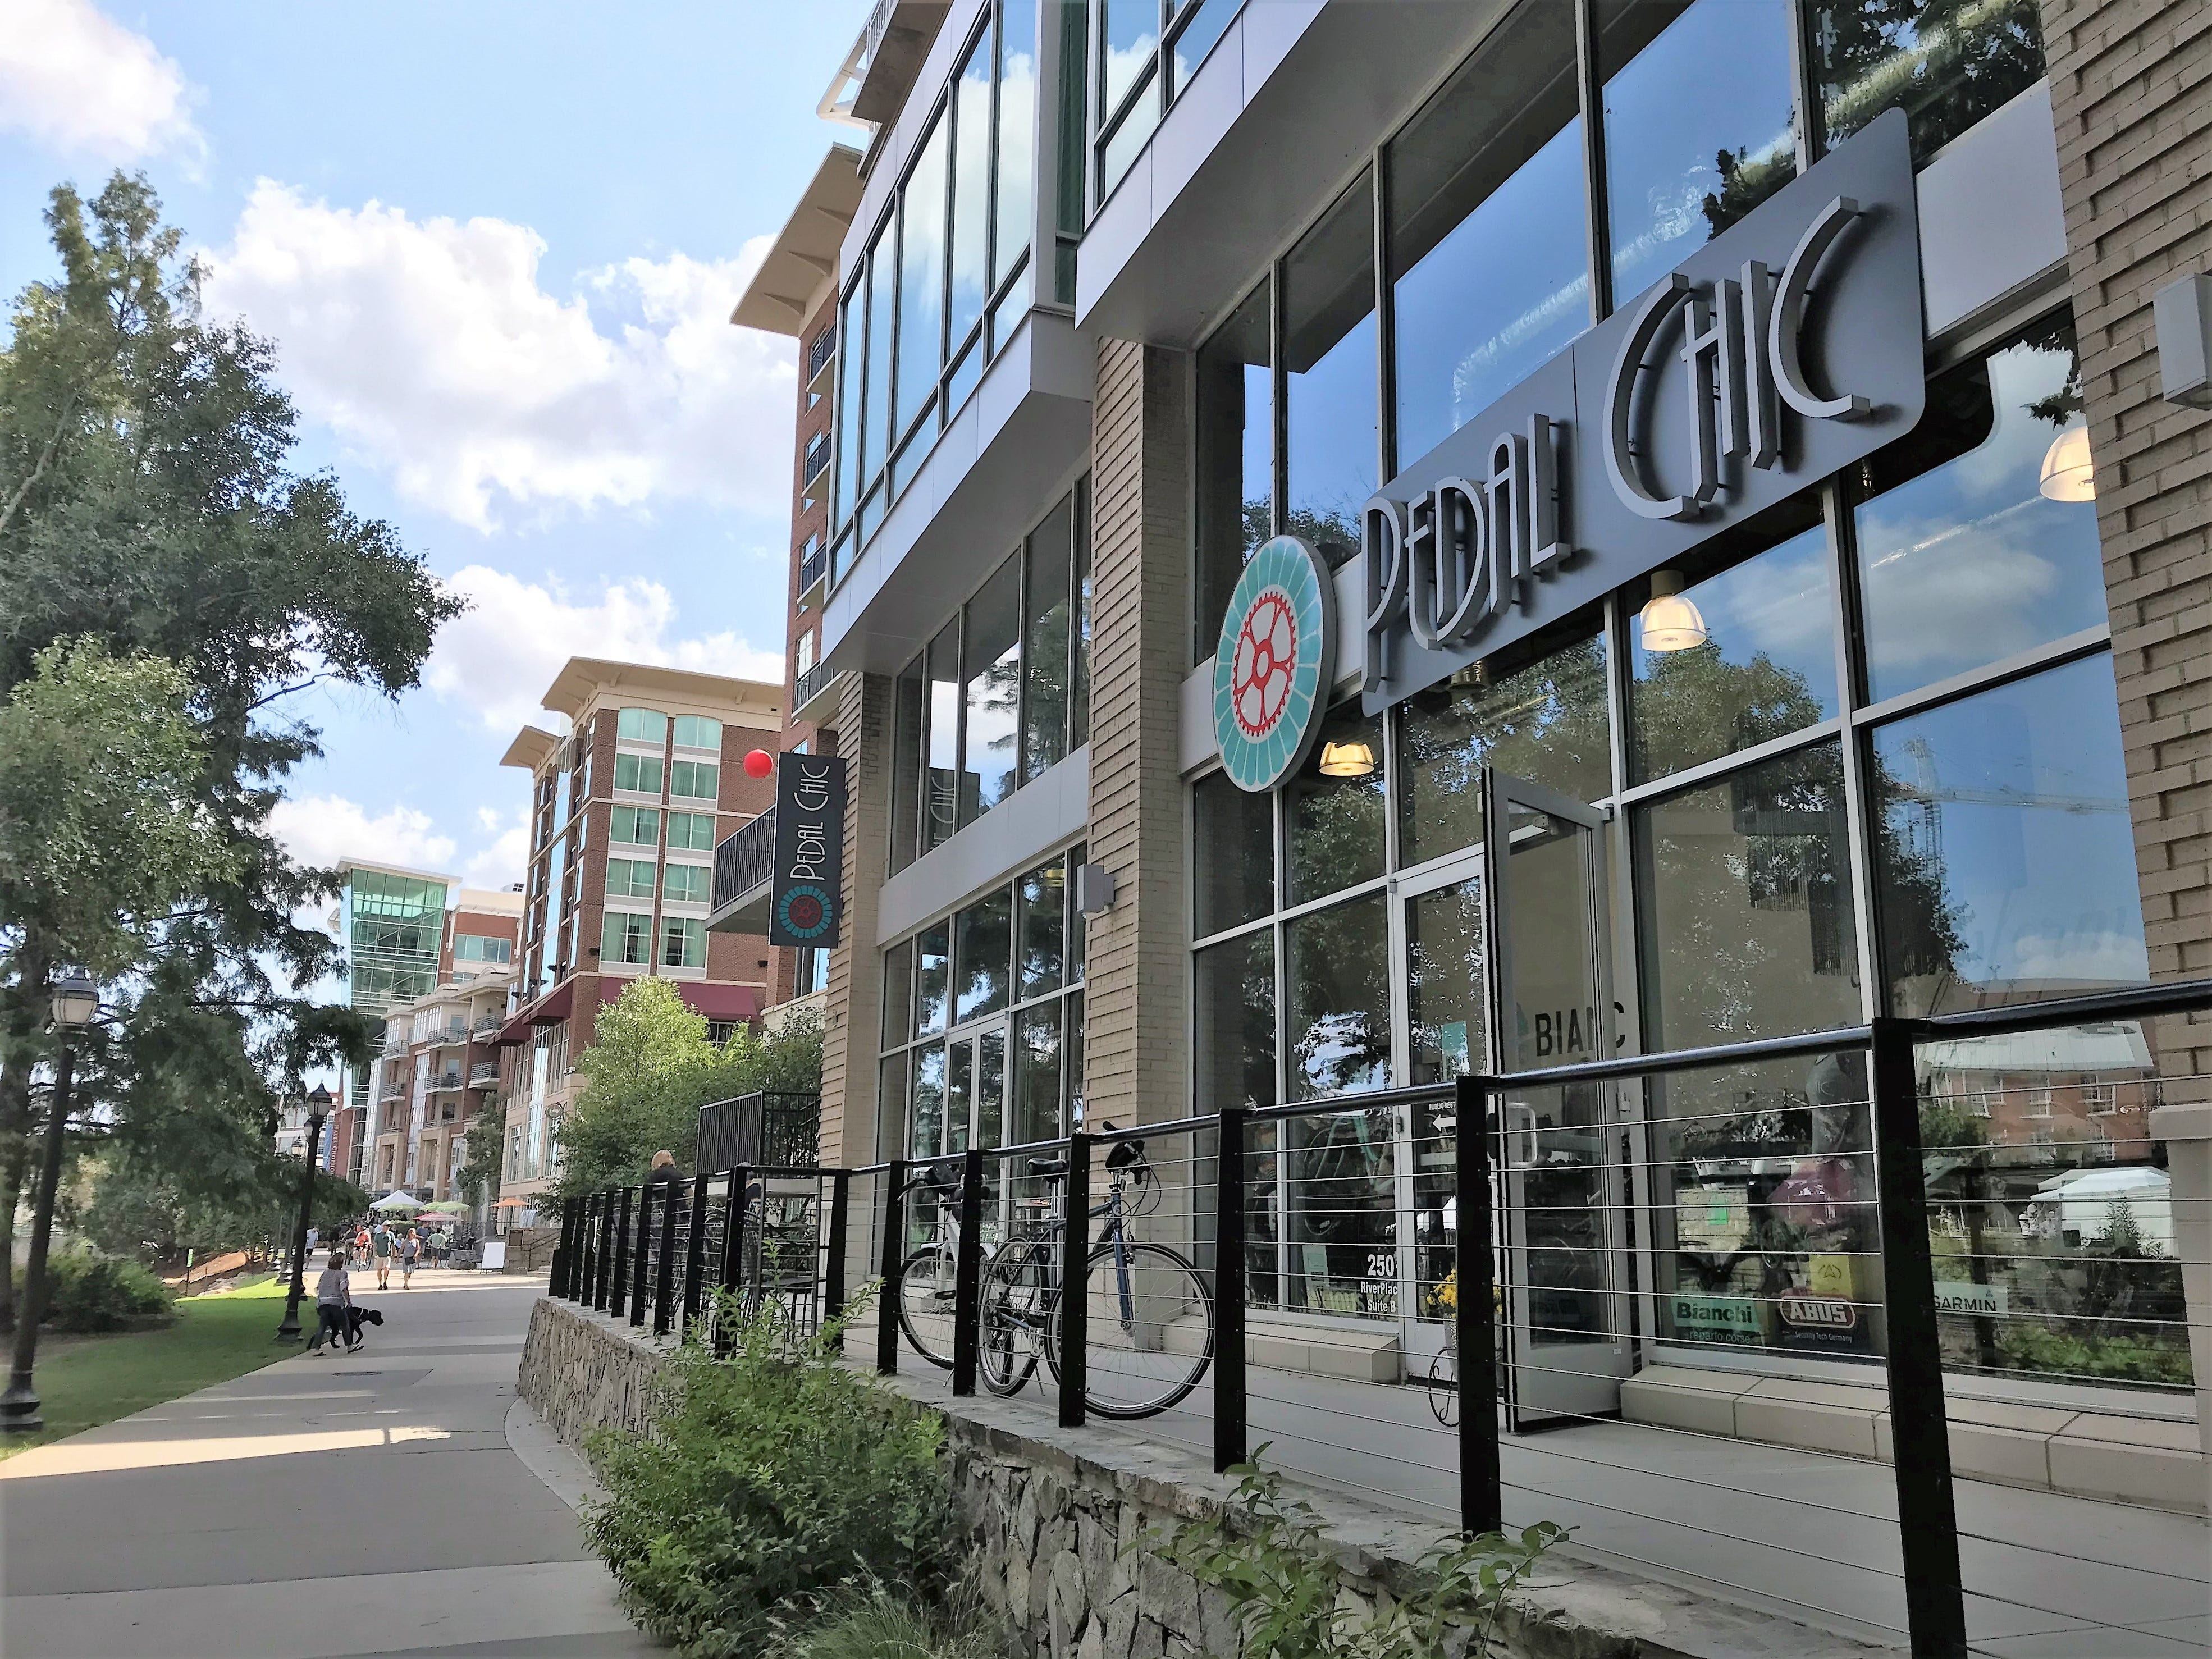 """The National Bicycle Dealers Association names two Greenville stores among """"America's Best Bike Shops"""" in 2018 -- FreeHub Bicycles and Pedal Chic, whose shop fronts the Reedy River."""